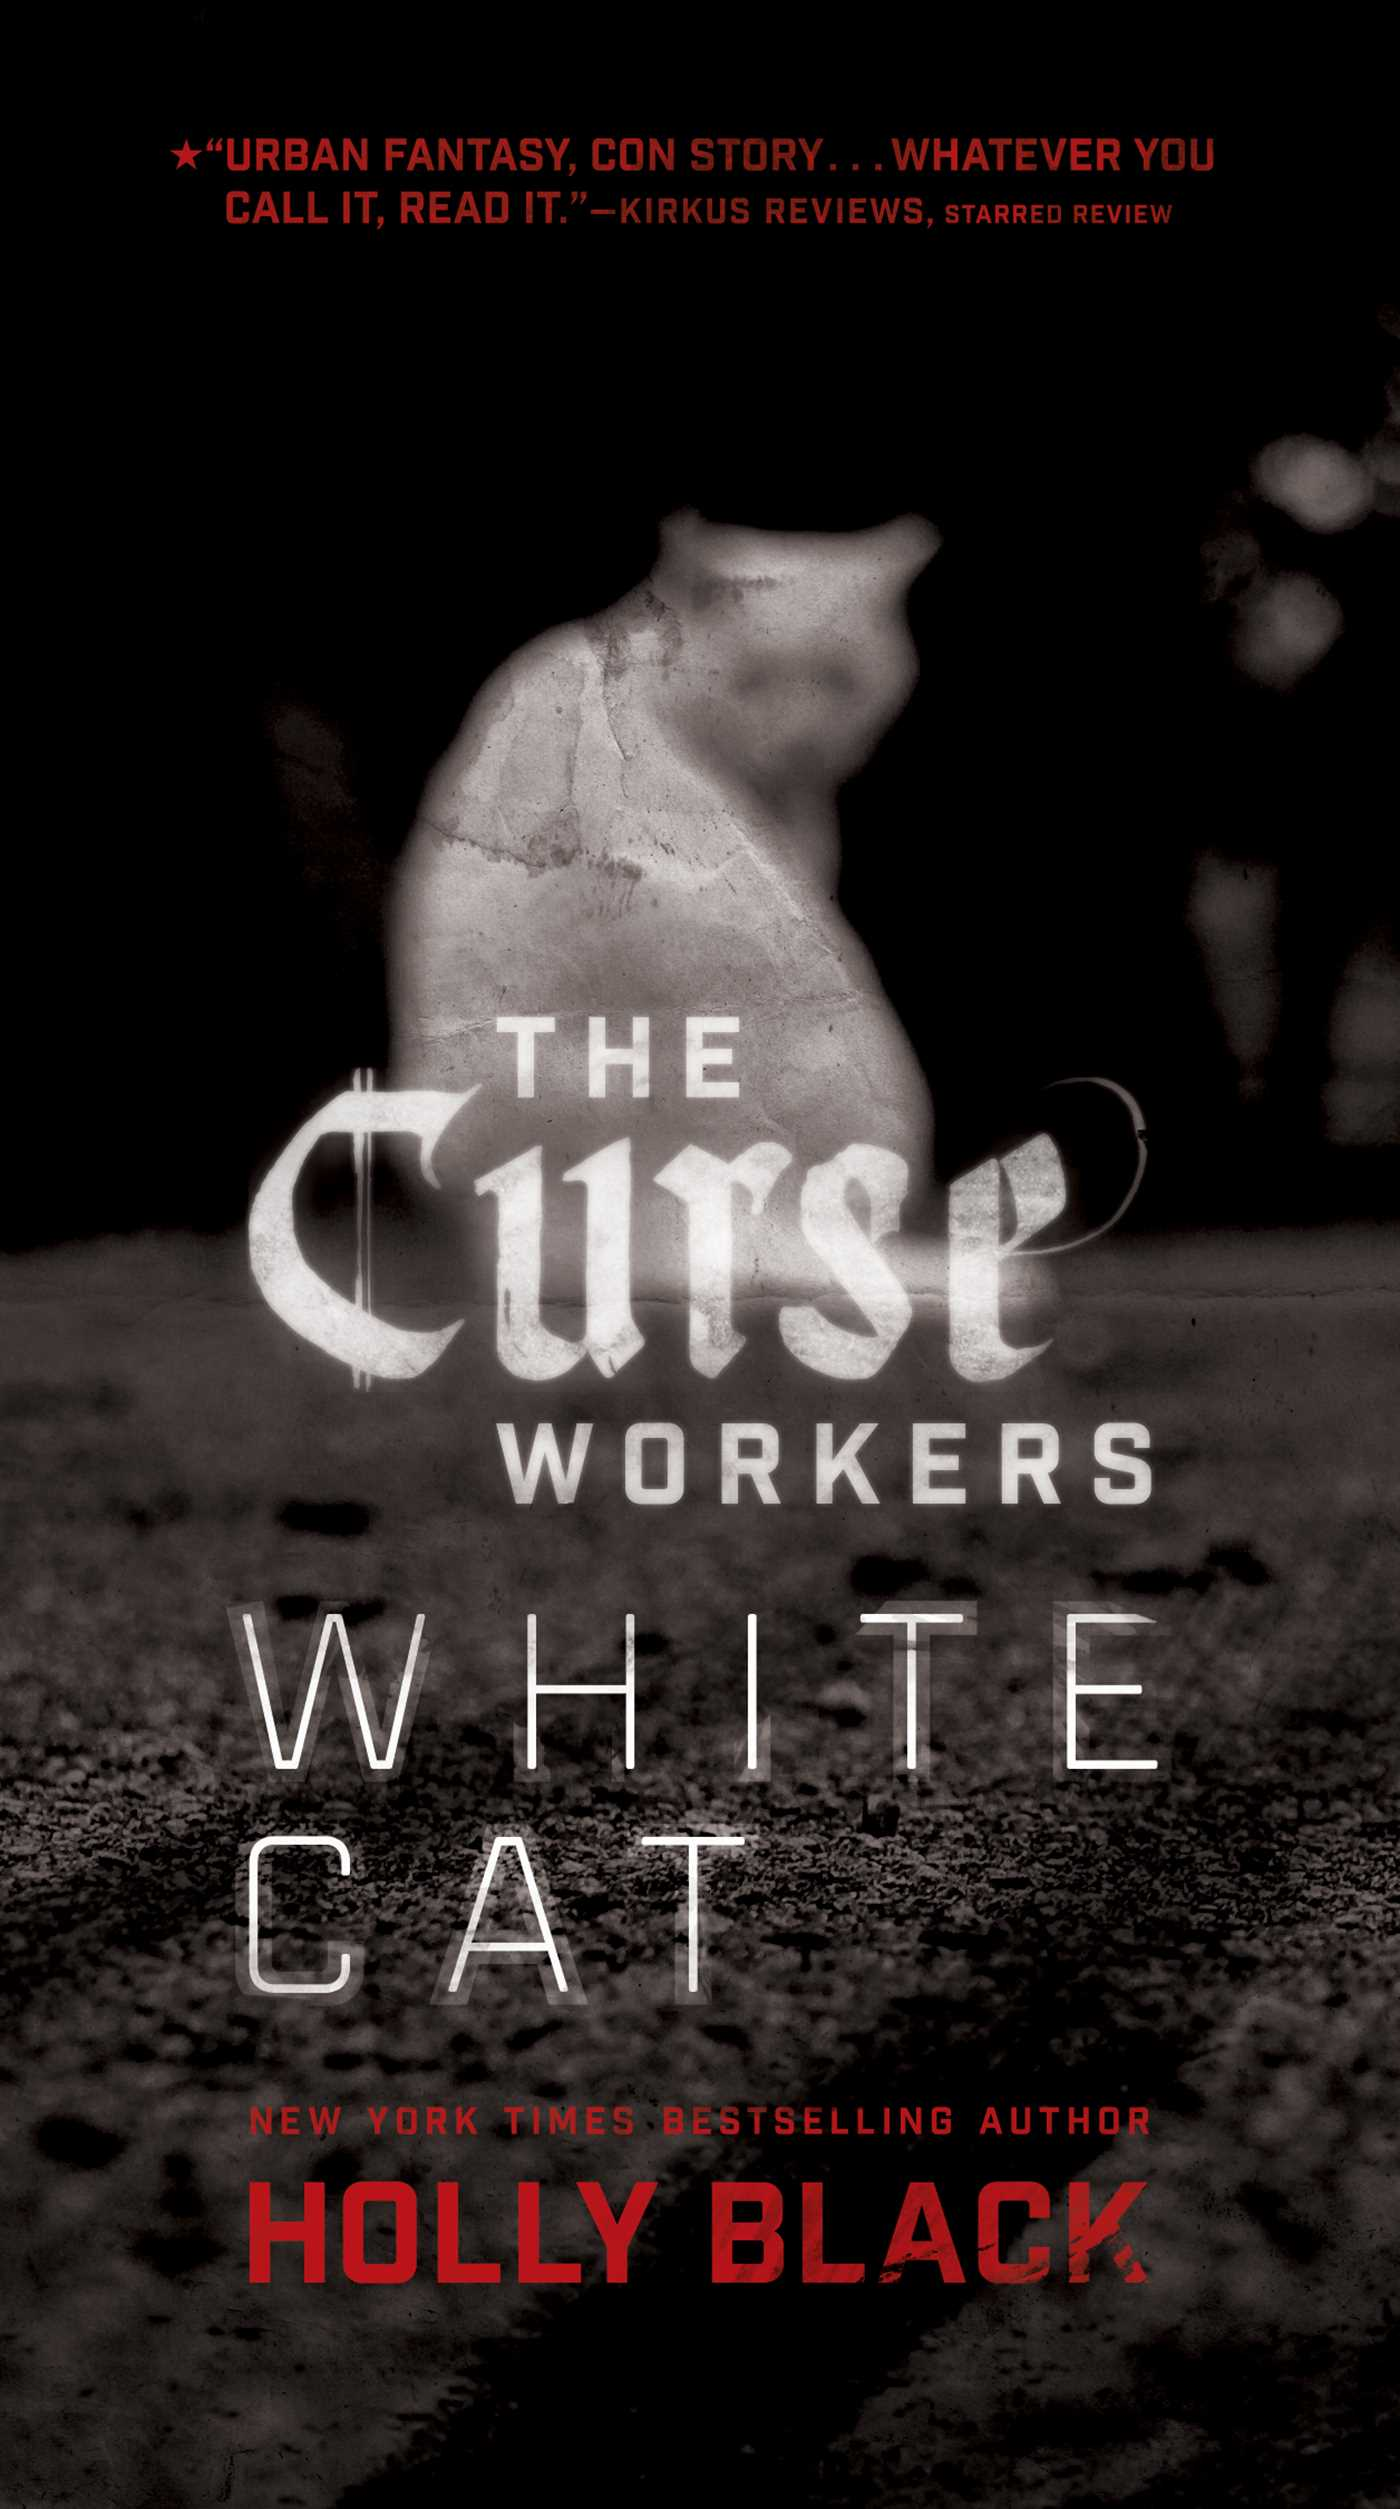 White-cat-9781442405974_hr